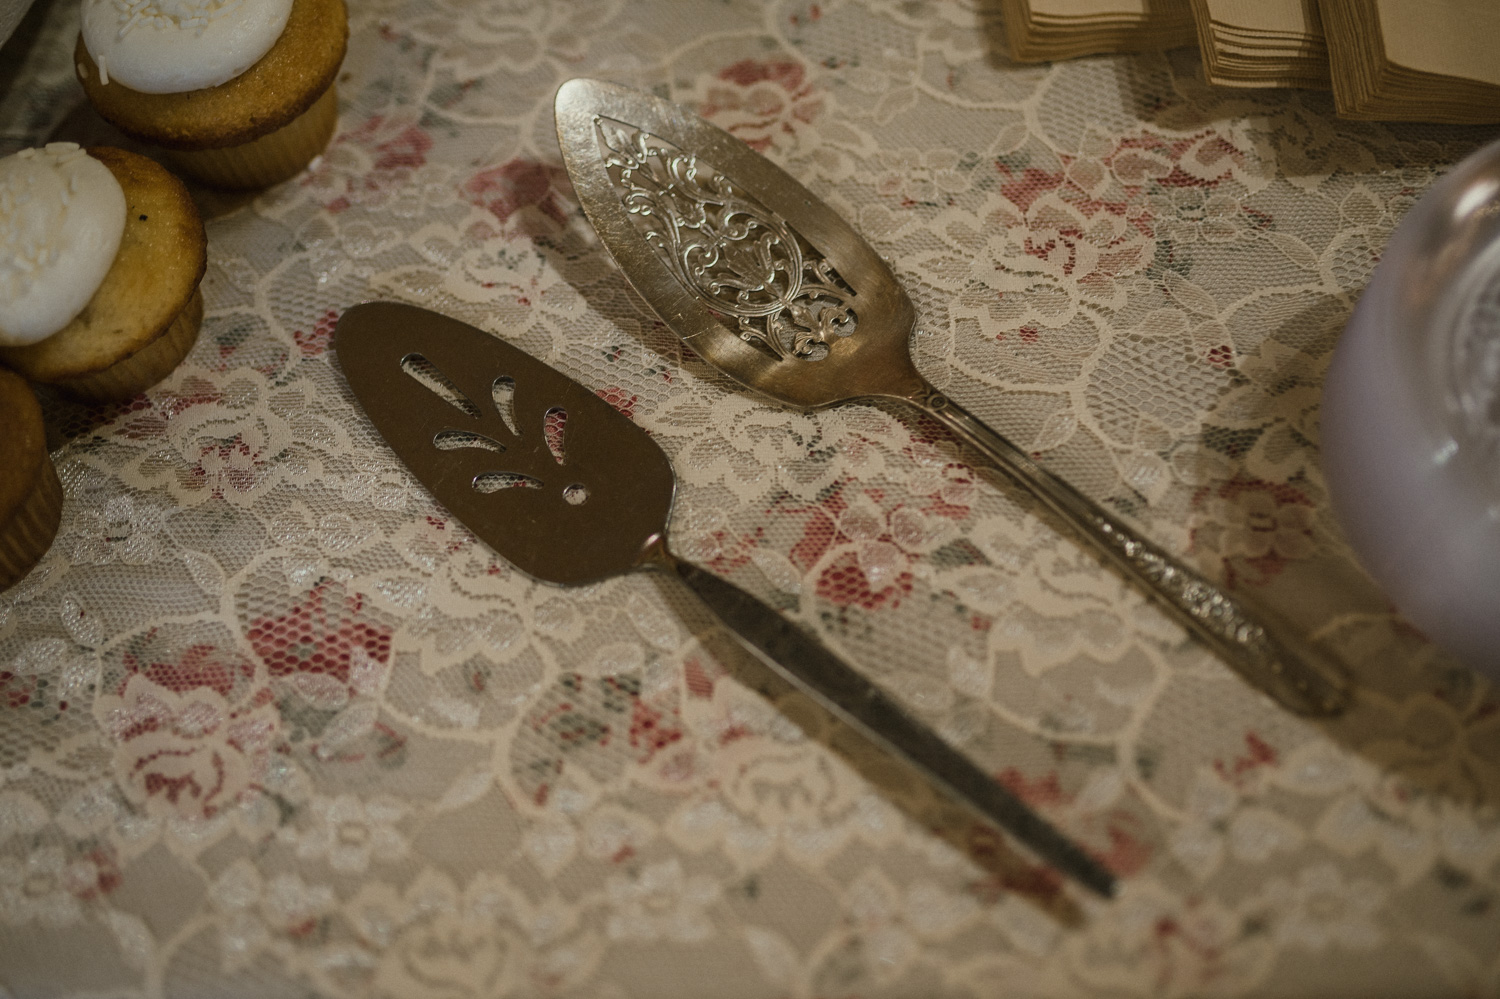 Wilbur D May Museum wedding, Beauty and the Beast wedding utensils photo